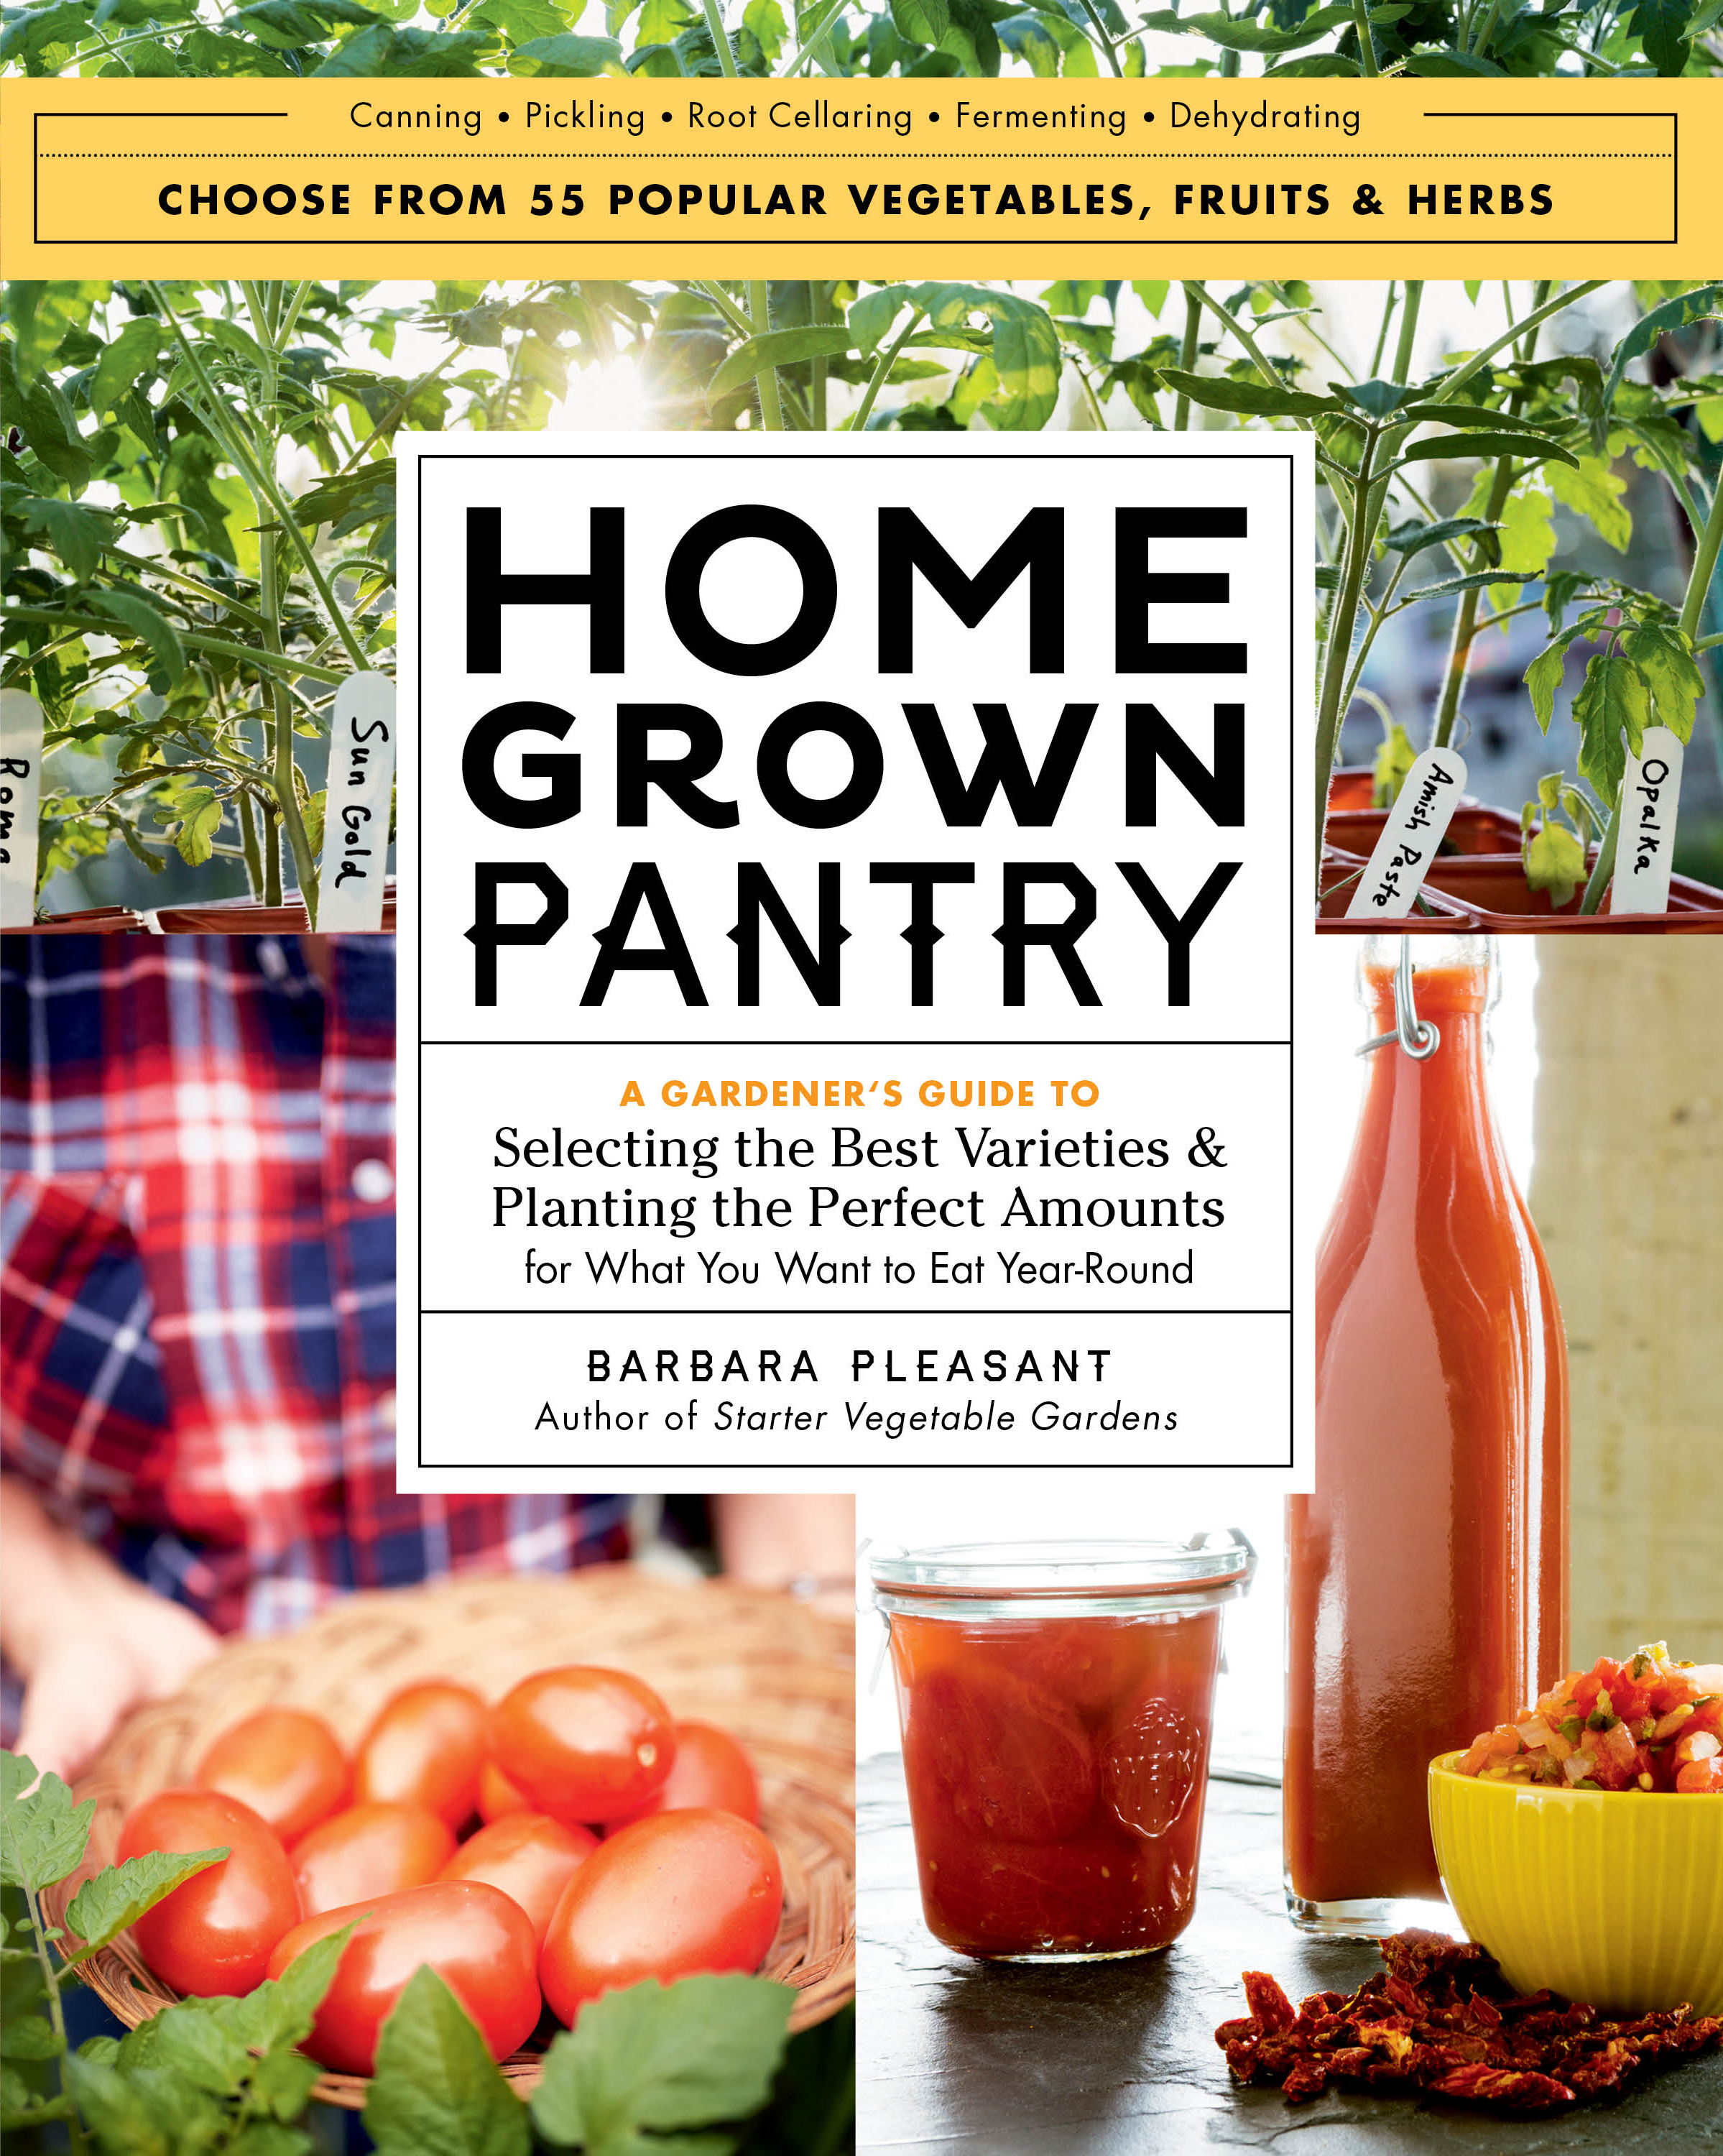 Homegrown Pantry A Gardener's Guide to Selecting the Best Varieties & Planting the Perfect Amounts for What You Want to Eat Year-Round - Barbara Pleasant